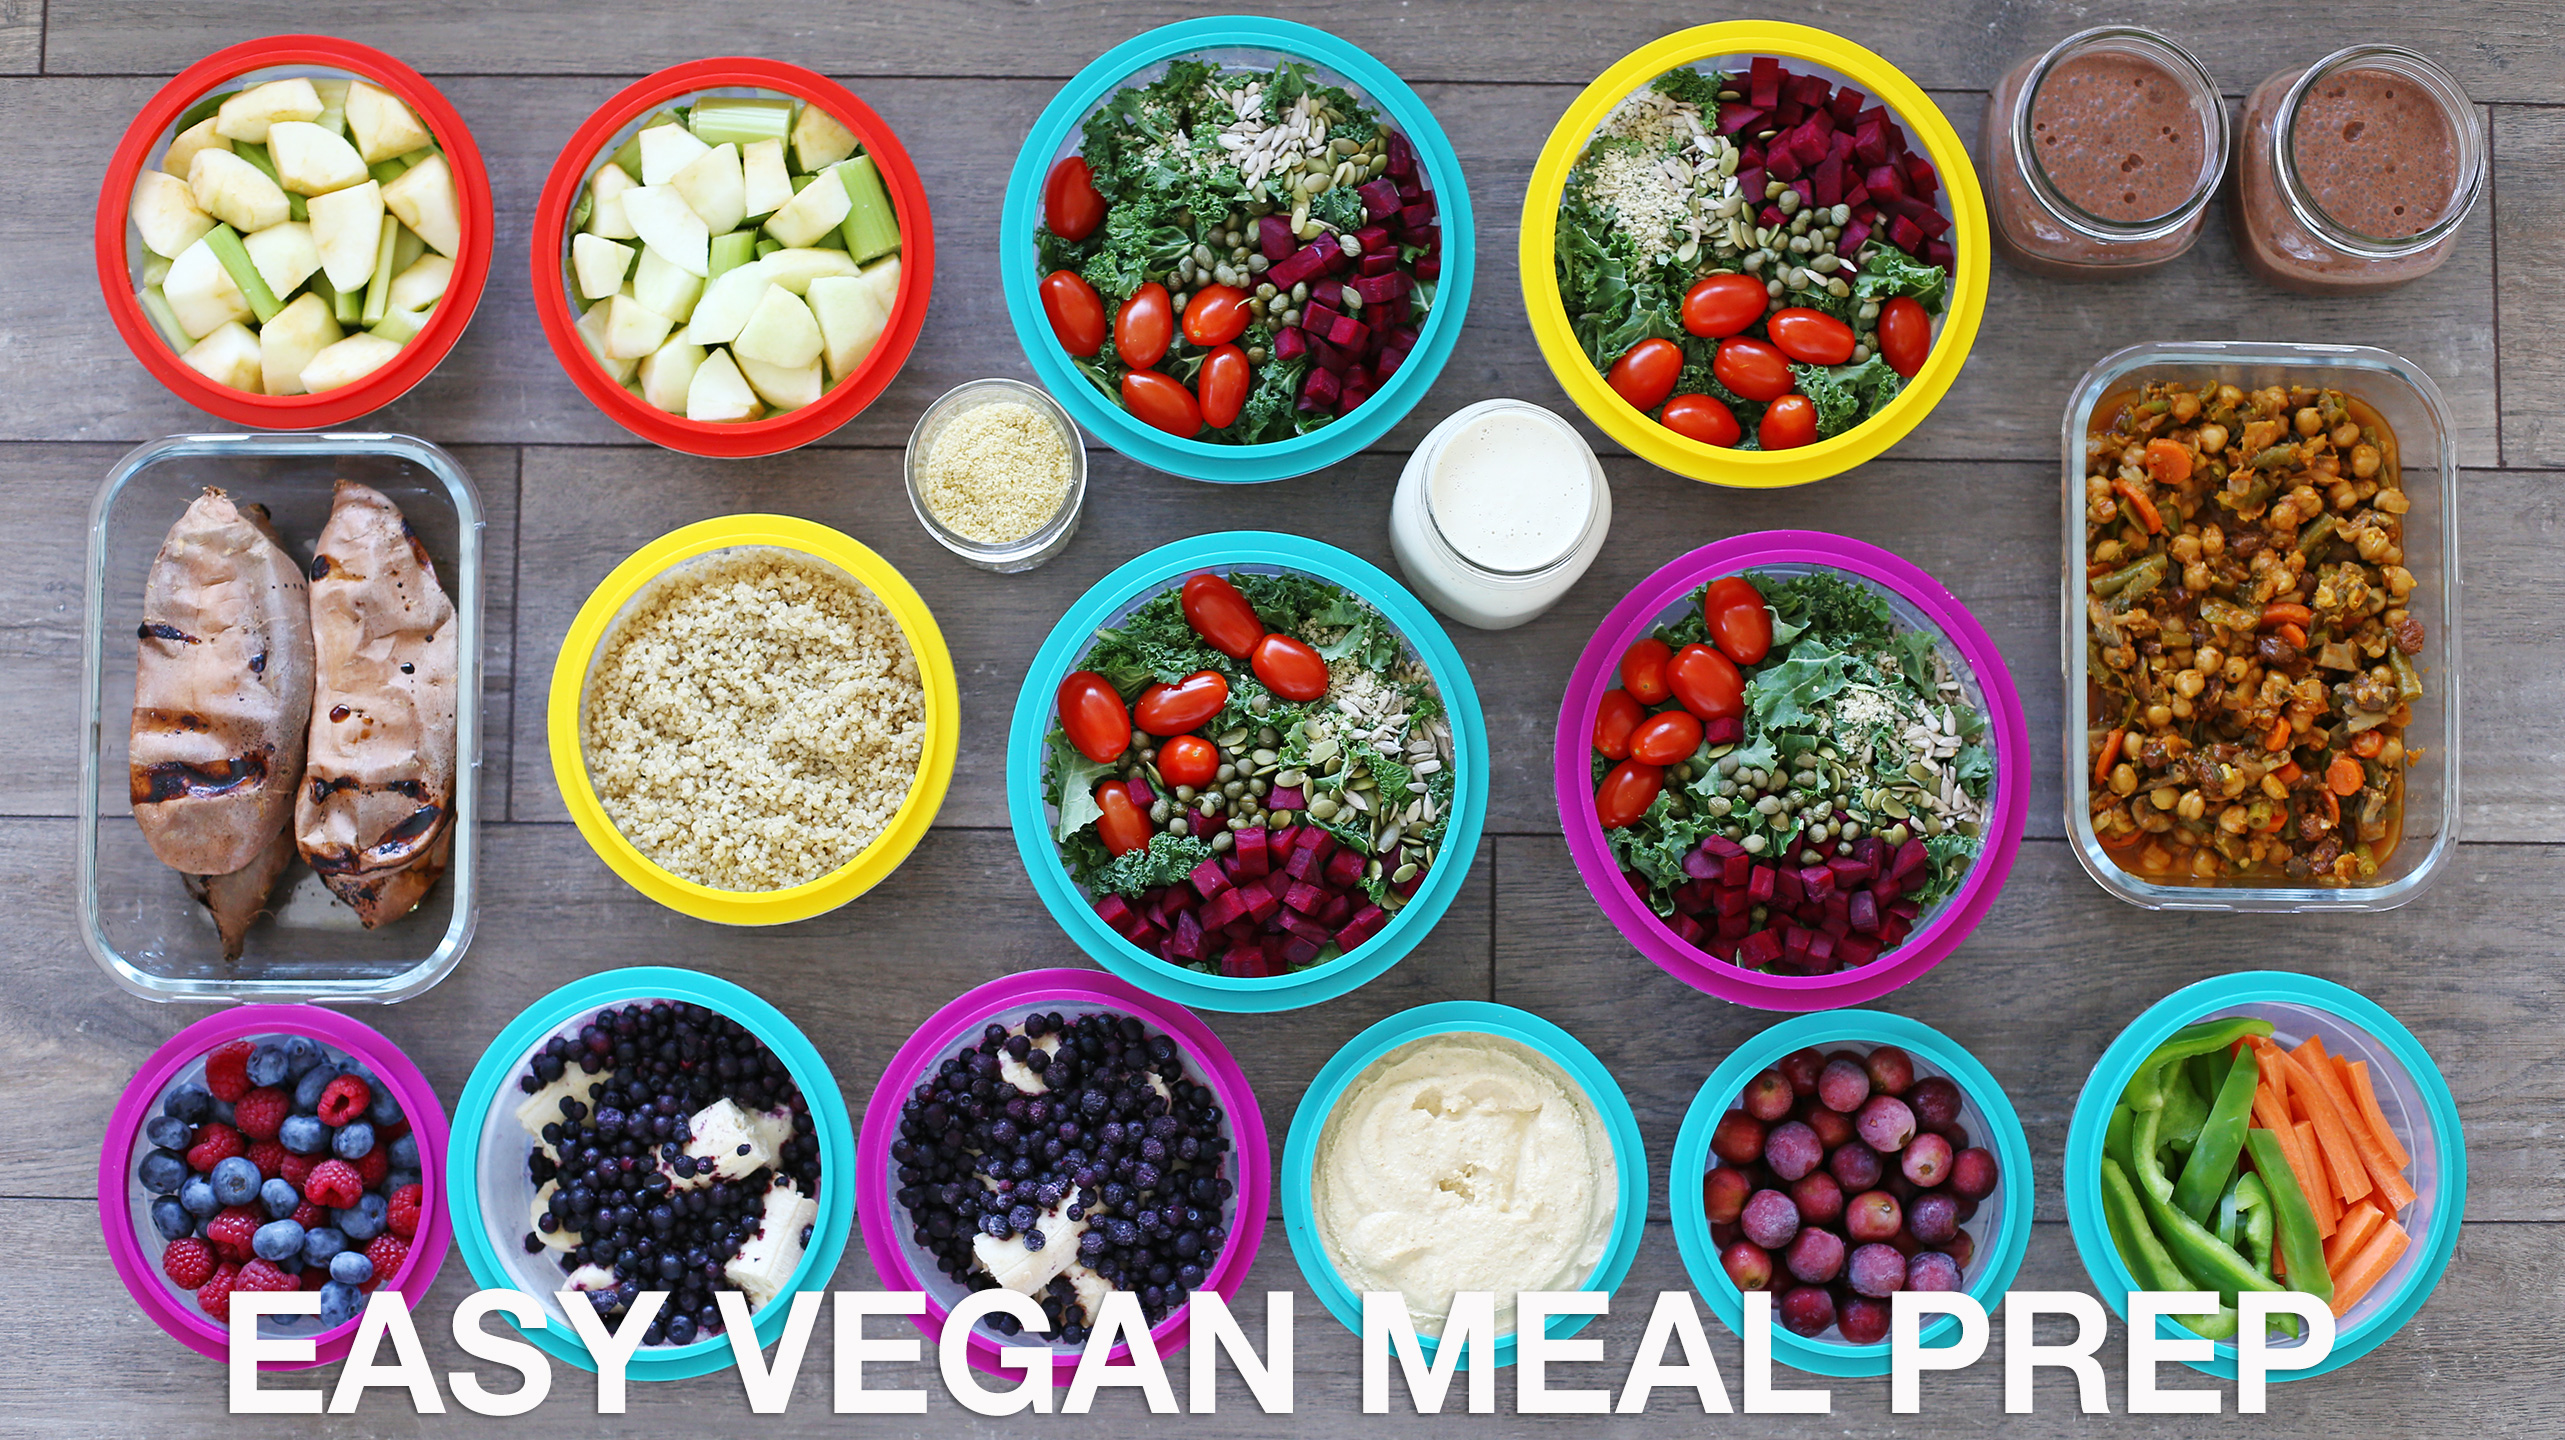 Easy vegan meal prep 12 healthy meals snacks fablunch easy vegan meal prep 12 healthy meals snacks forumfinder Image collections